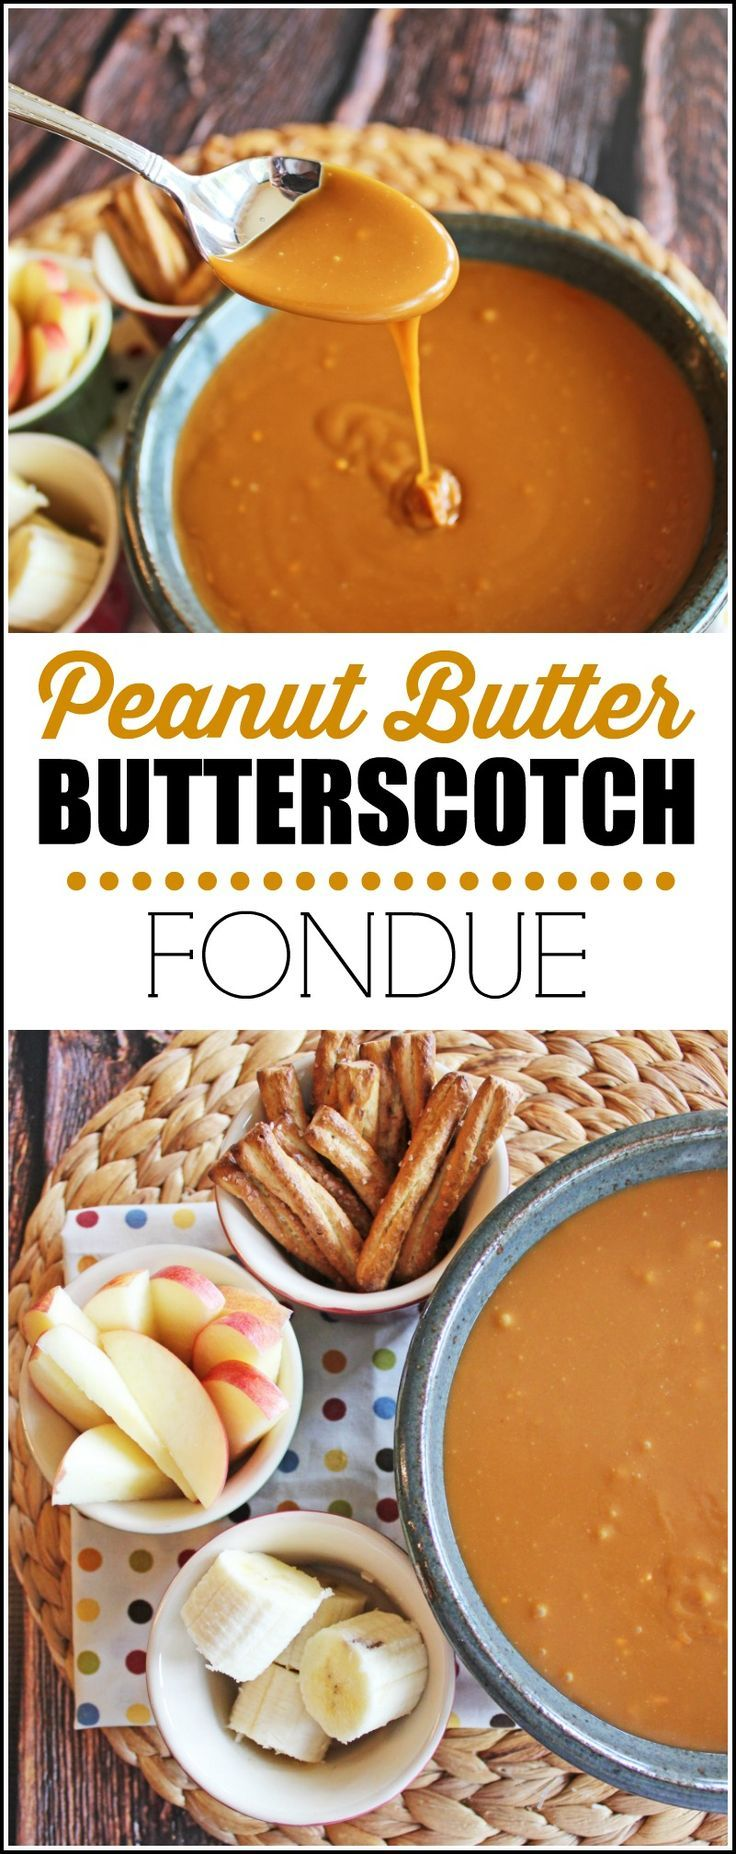 Peanut Butter Butterscotch Fondue Recipe and Printable List of 30 Fabulous Fondue Dippers from Jamie Cooks It Up!